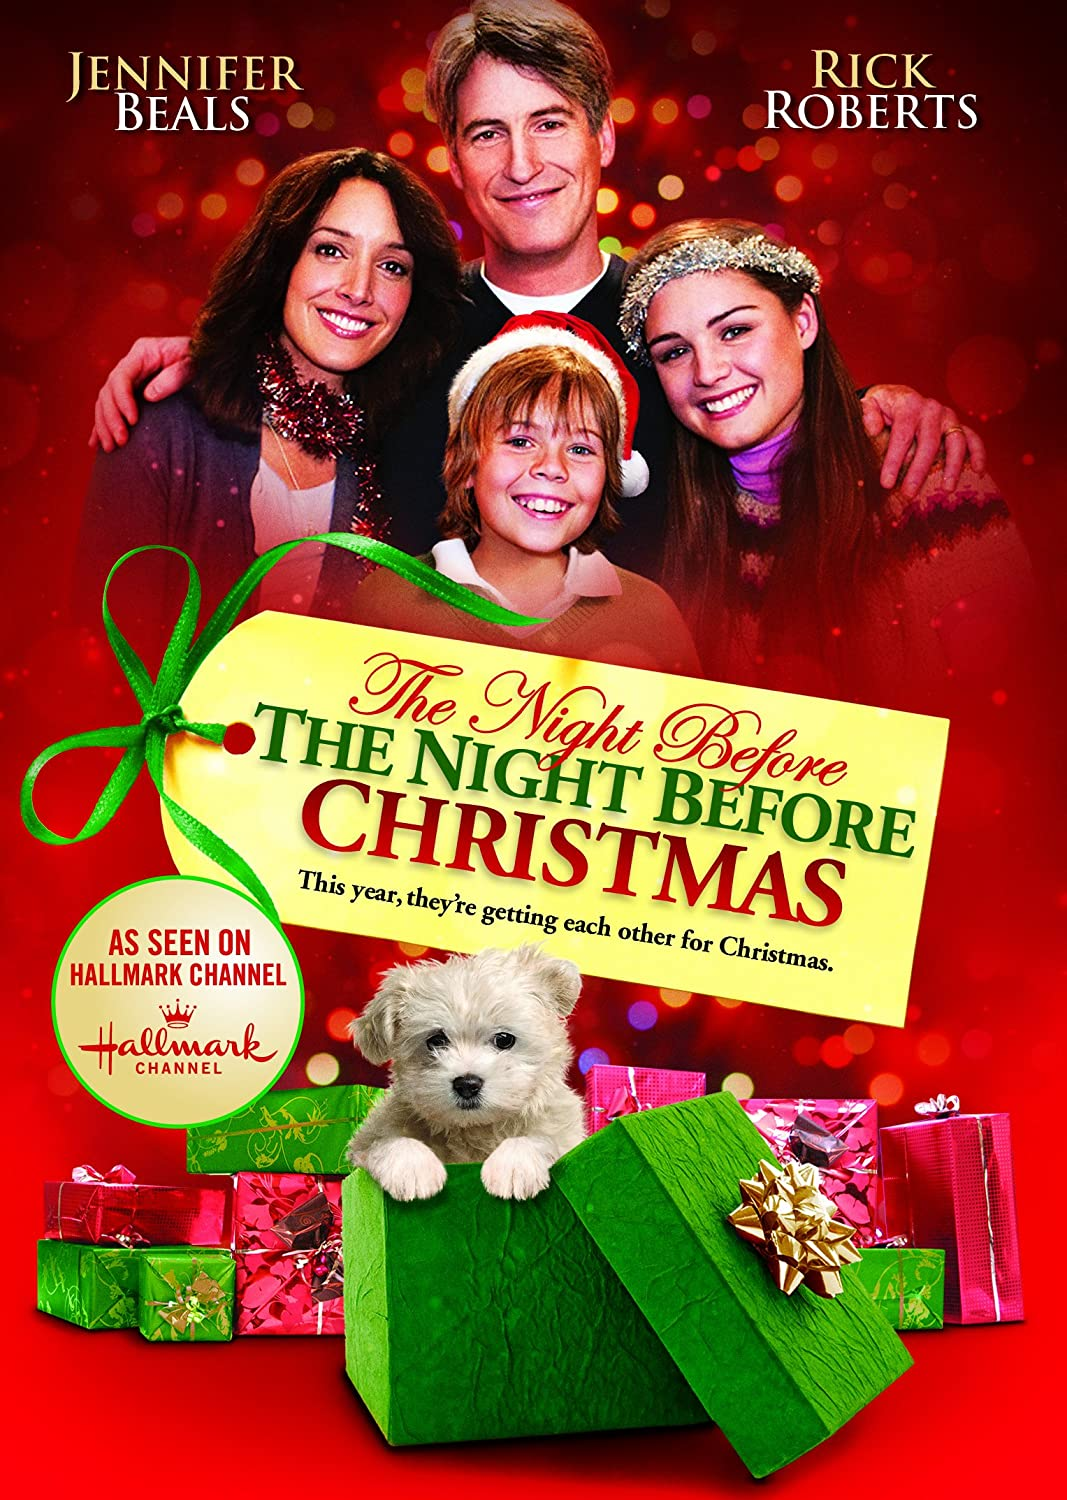 Amazon.com: The Night Before the Night Before Christmas: Jennifer ...